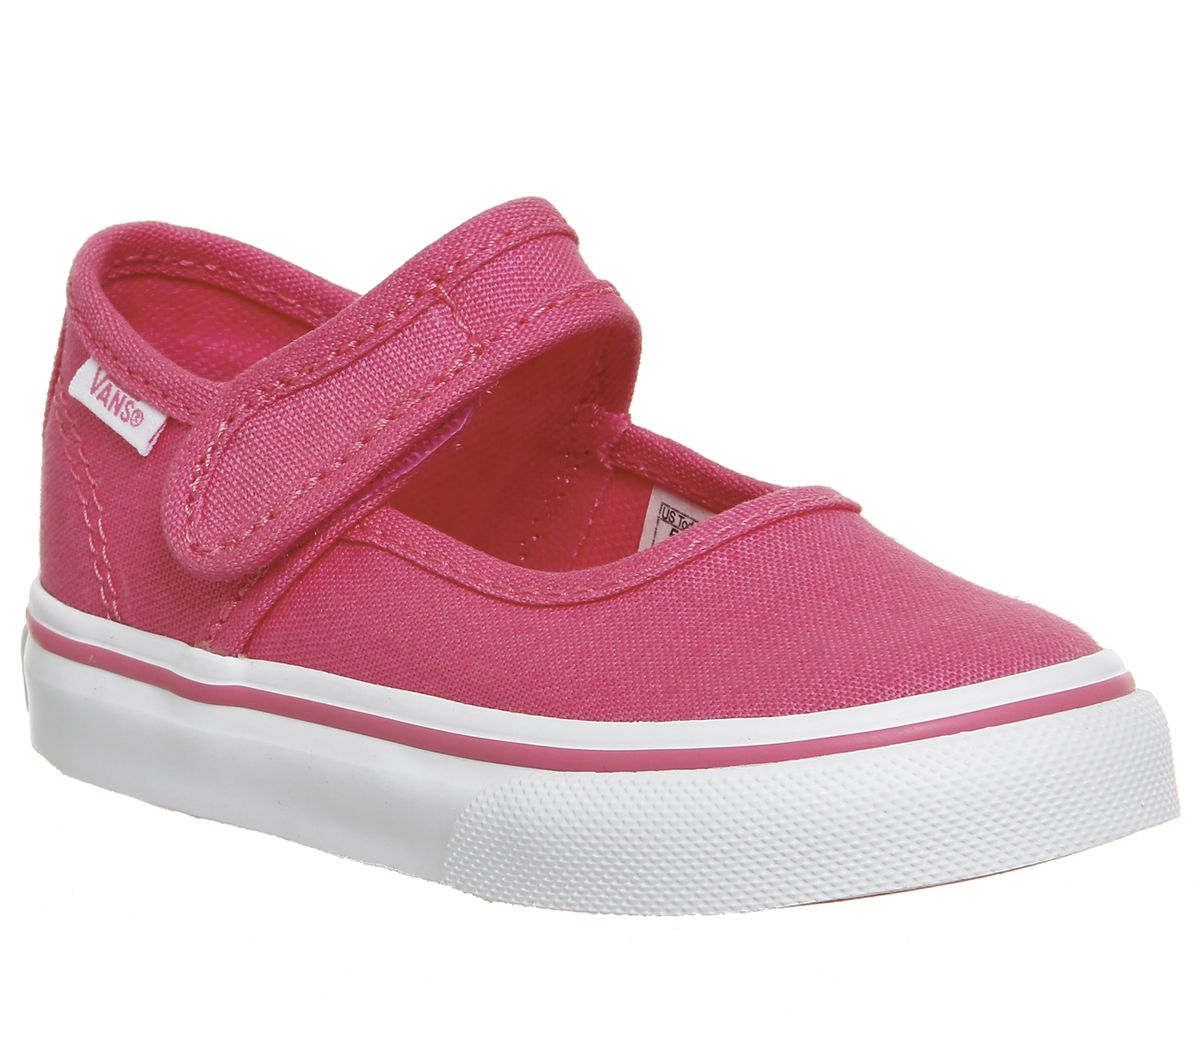 91a895335fde4 Vans Mary Jane Toddler Shoes Hot Pink True White - Unisex